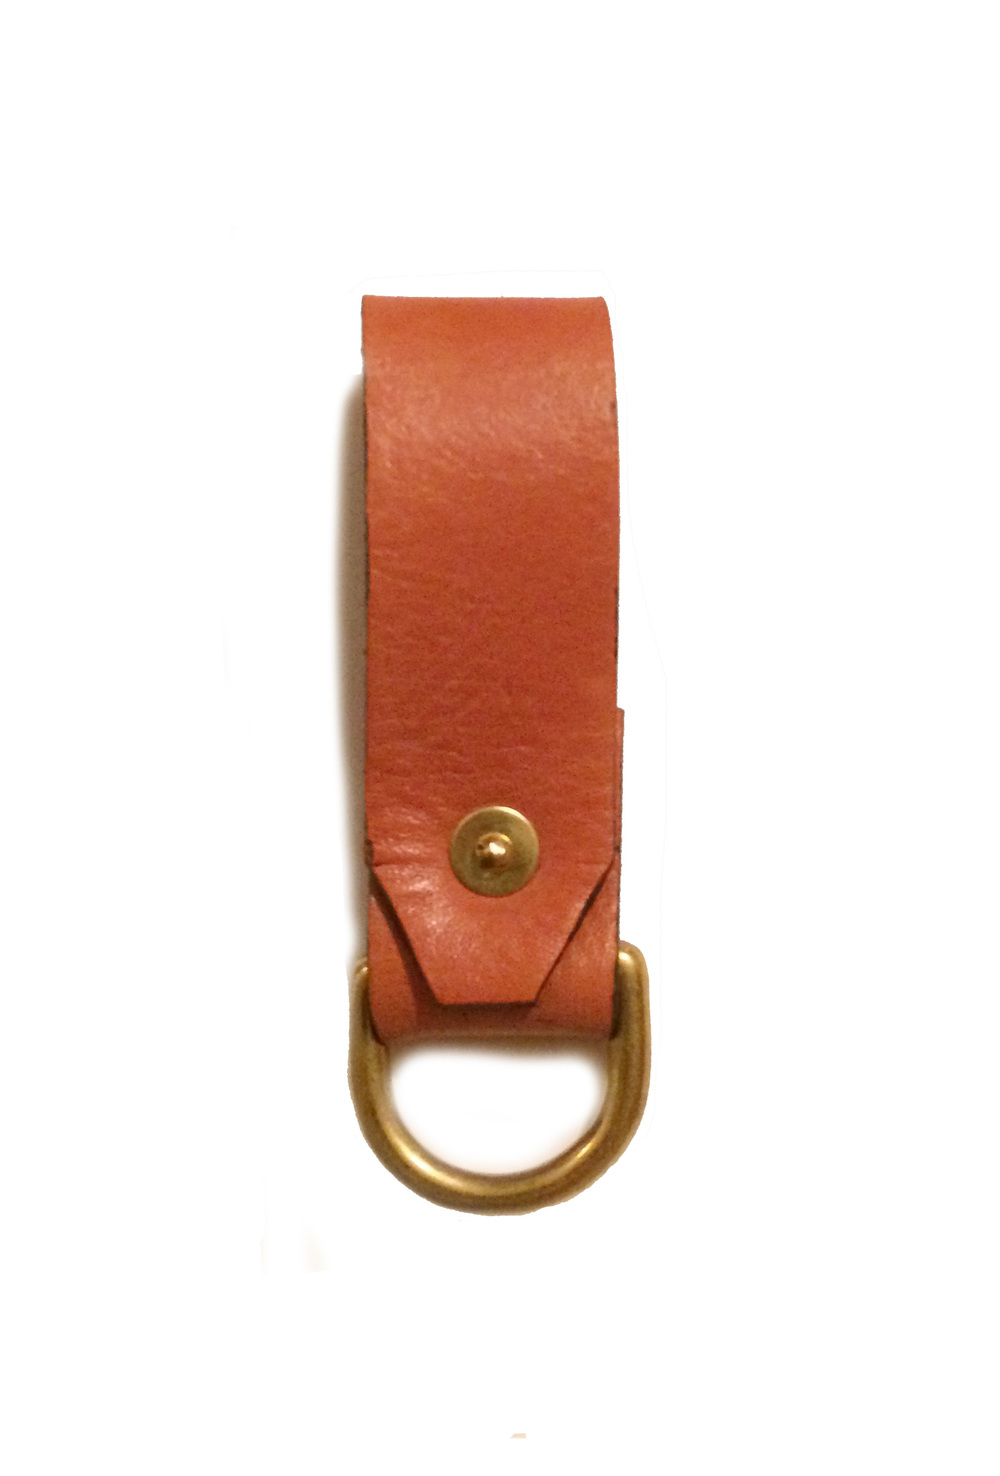 Leather Keyring, Haiti Design Co-op, $18.00